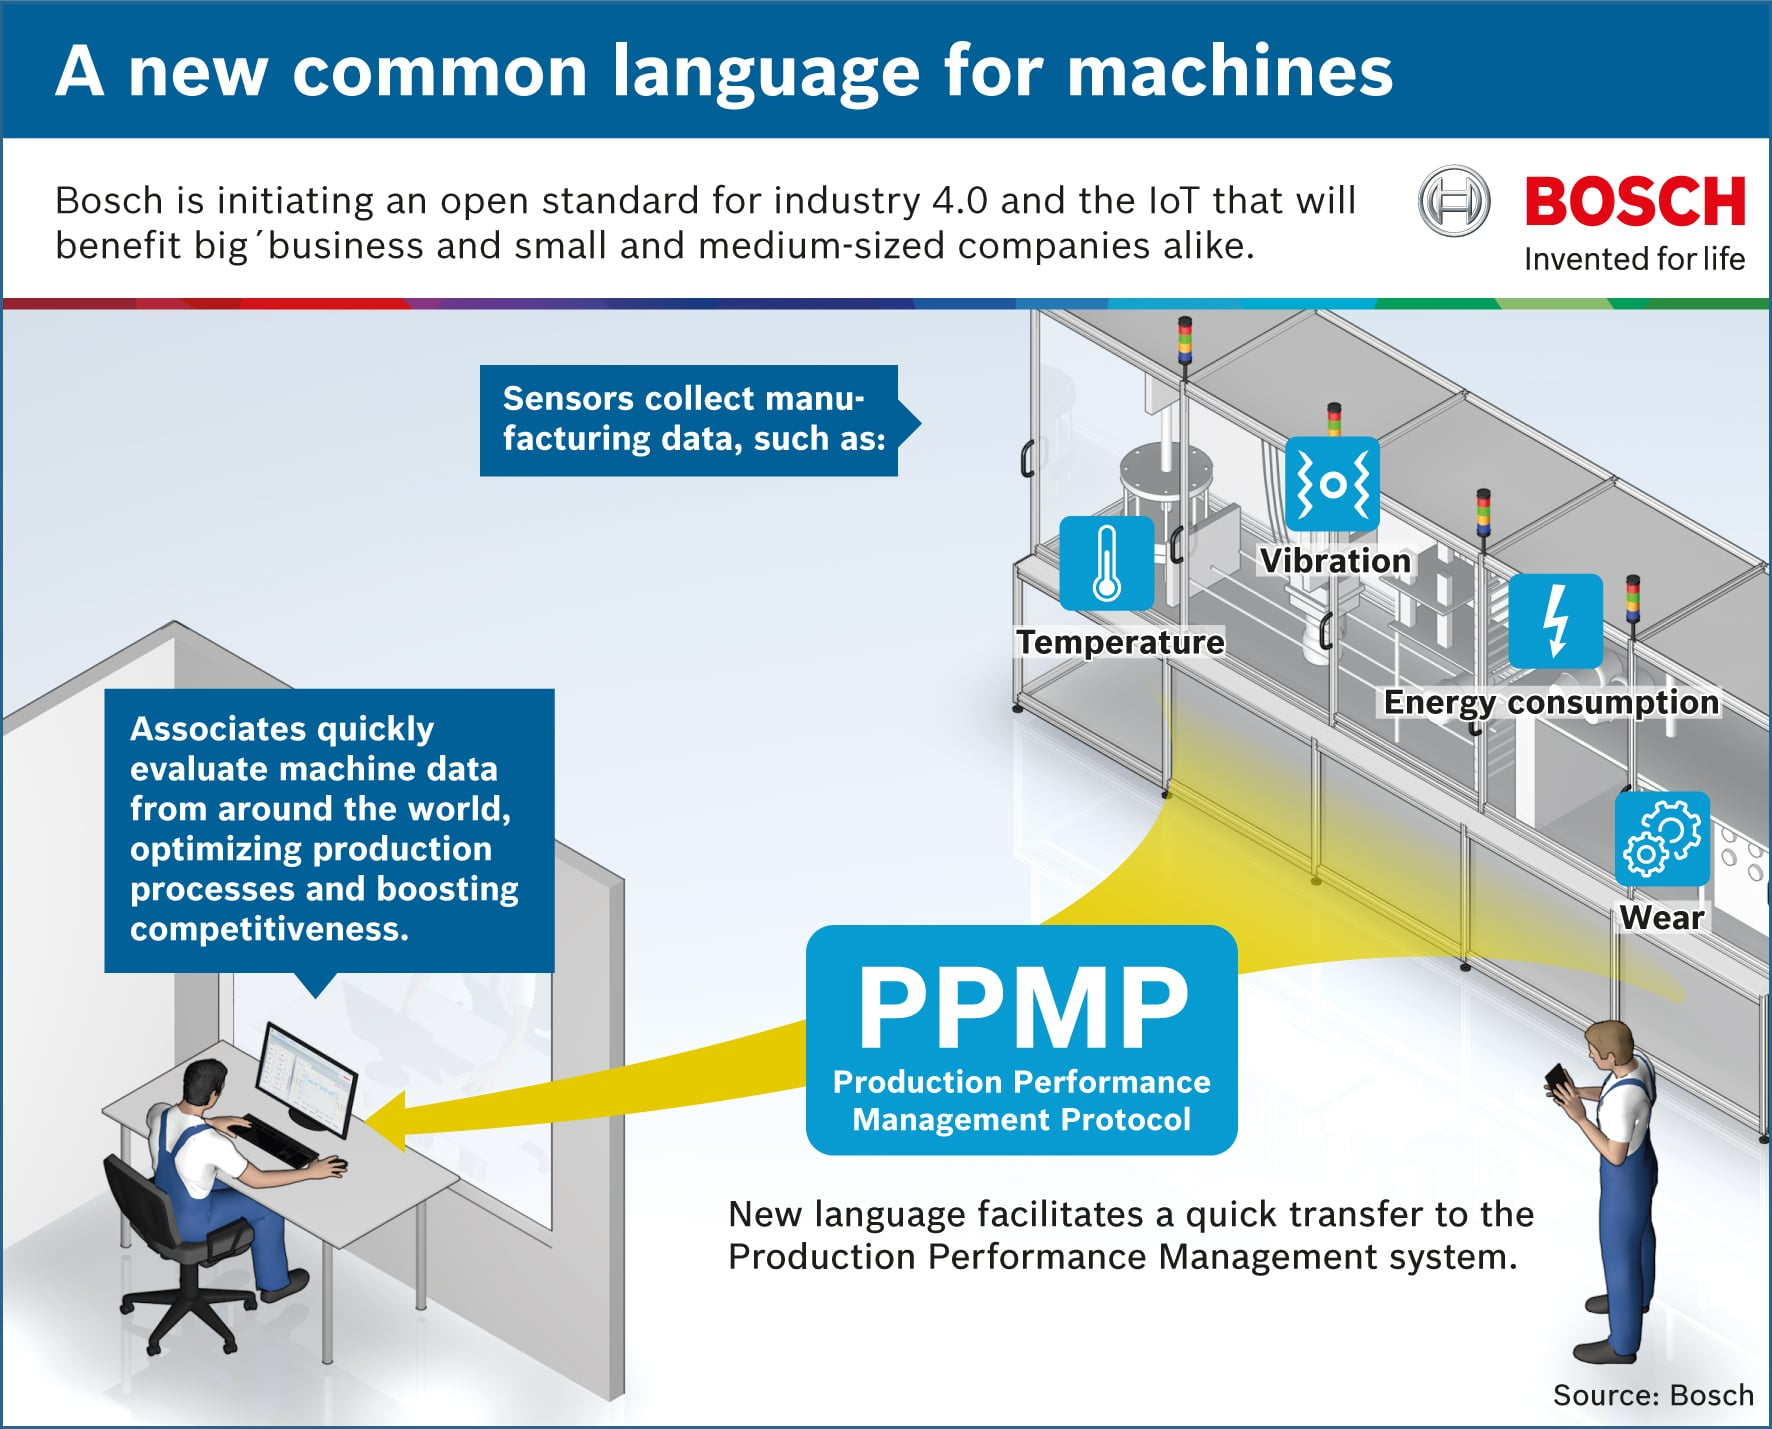 The Production Performance Manager Protocol is a new language that fascilitates a quick transfer to the Production Performance Management System. Sensors collect data such as temperature, vibration or energy consumption. Thanks to the PPMP associates around the world can evaluate machine data from around the world.